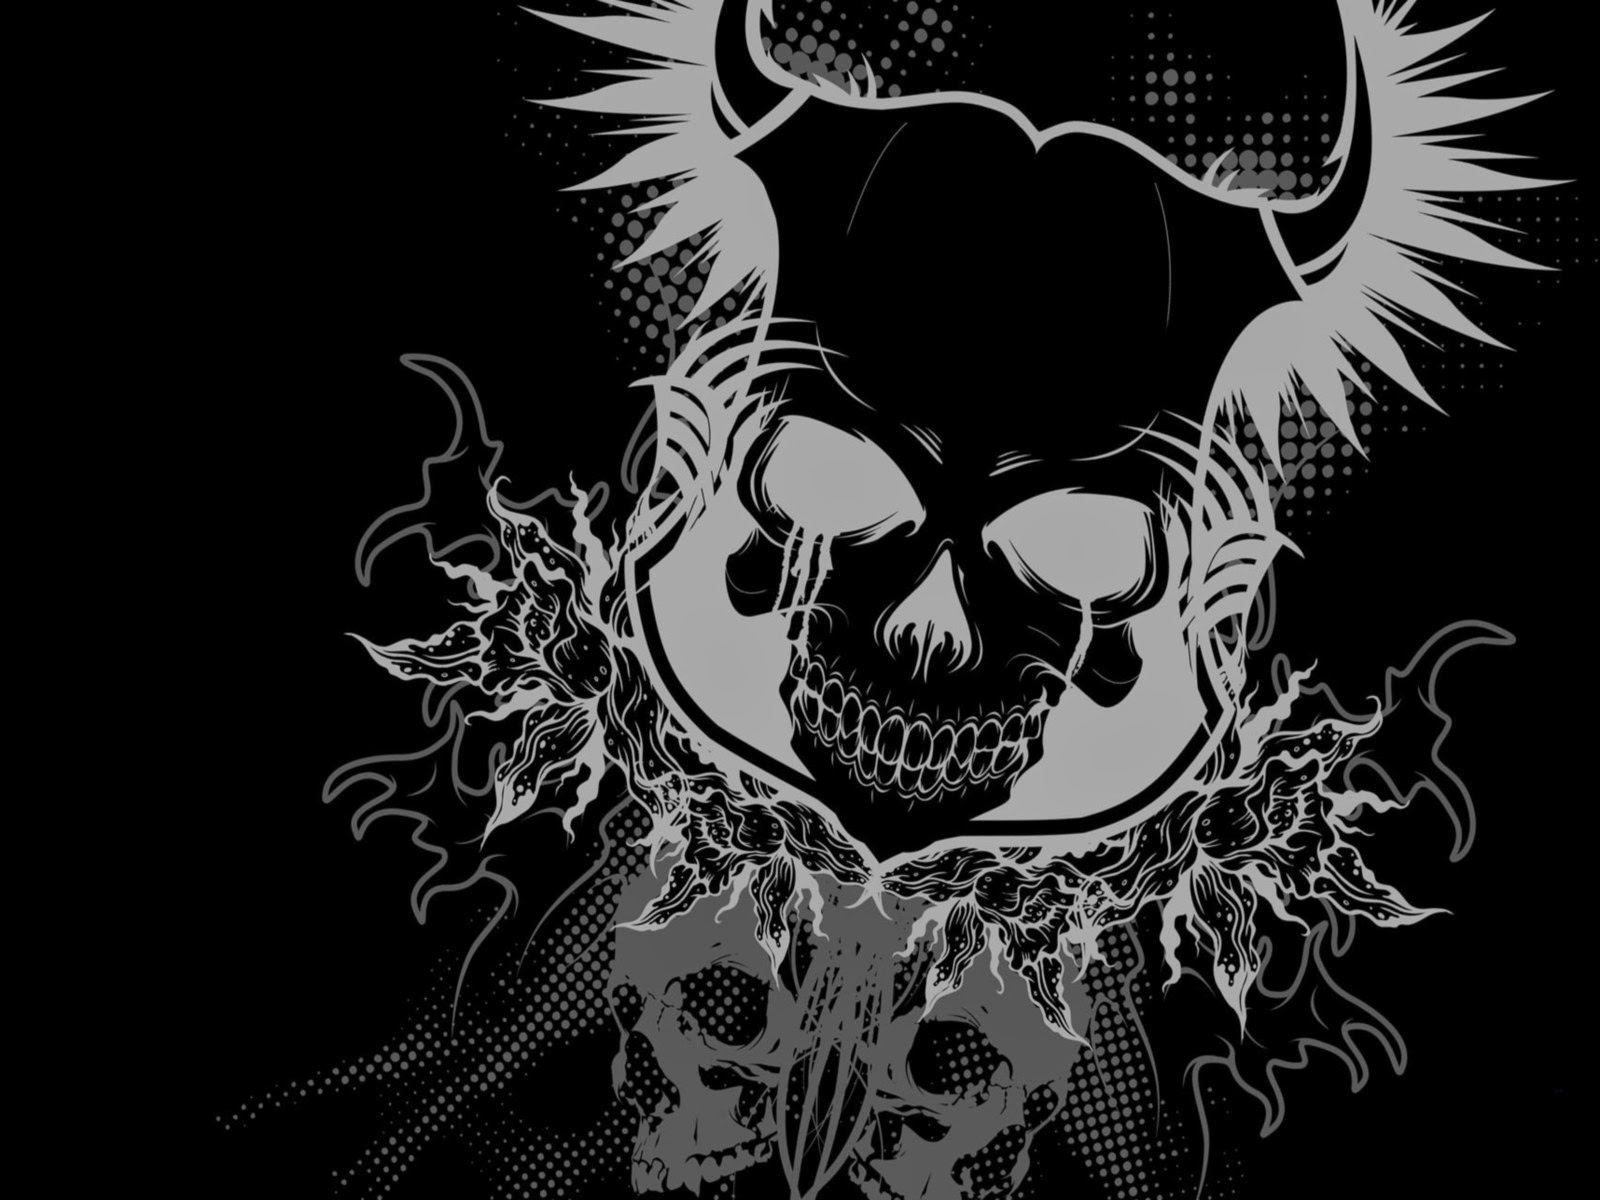 Awesome Skull Wallpapers Wallpapers Browse: Wallpapers (PC) (Celular): Rock In